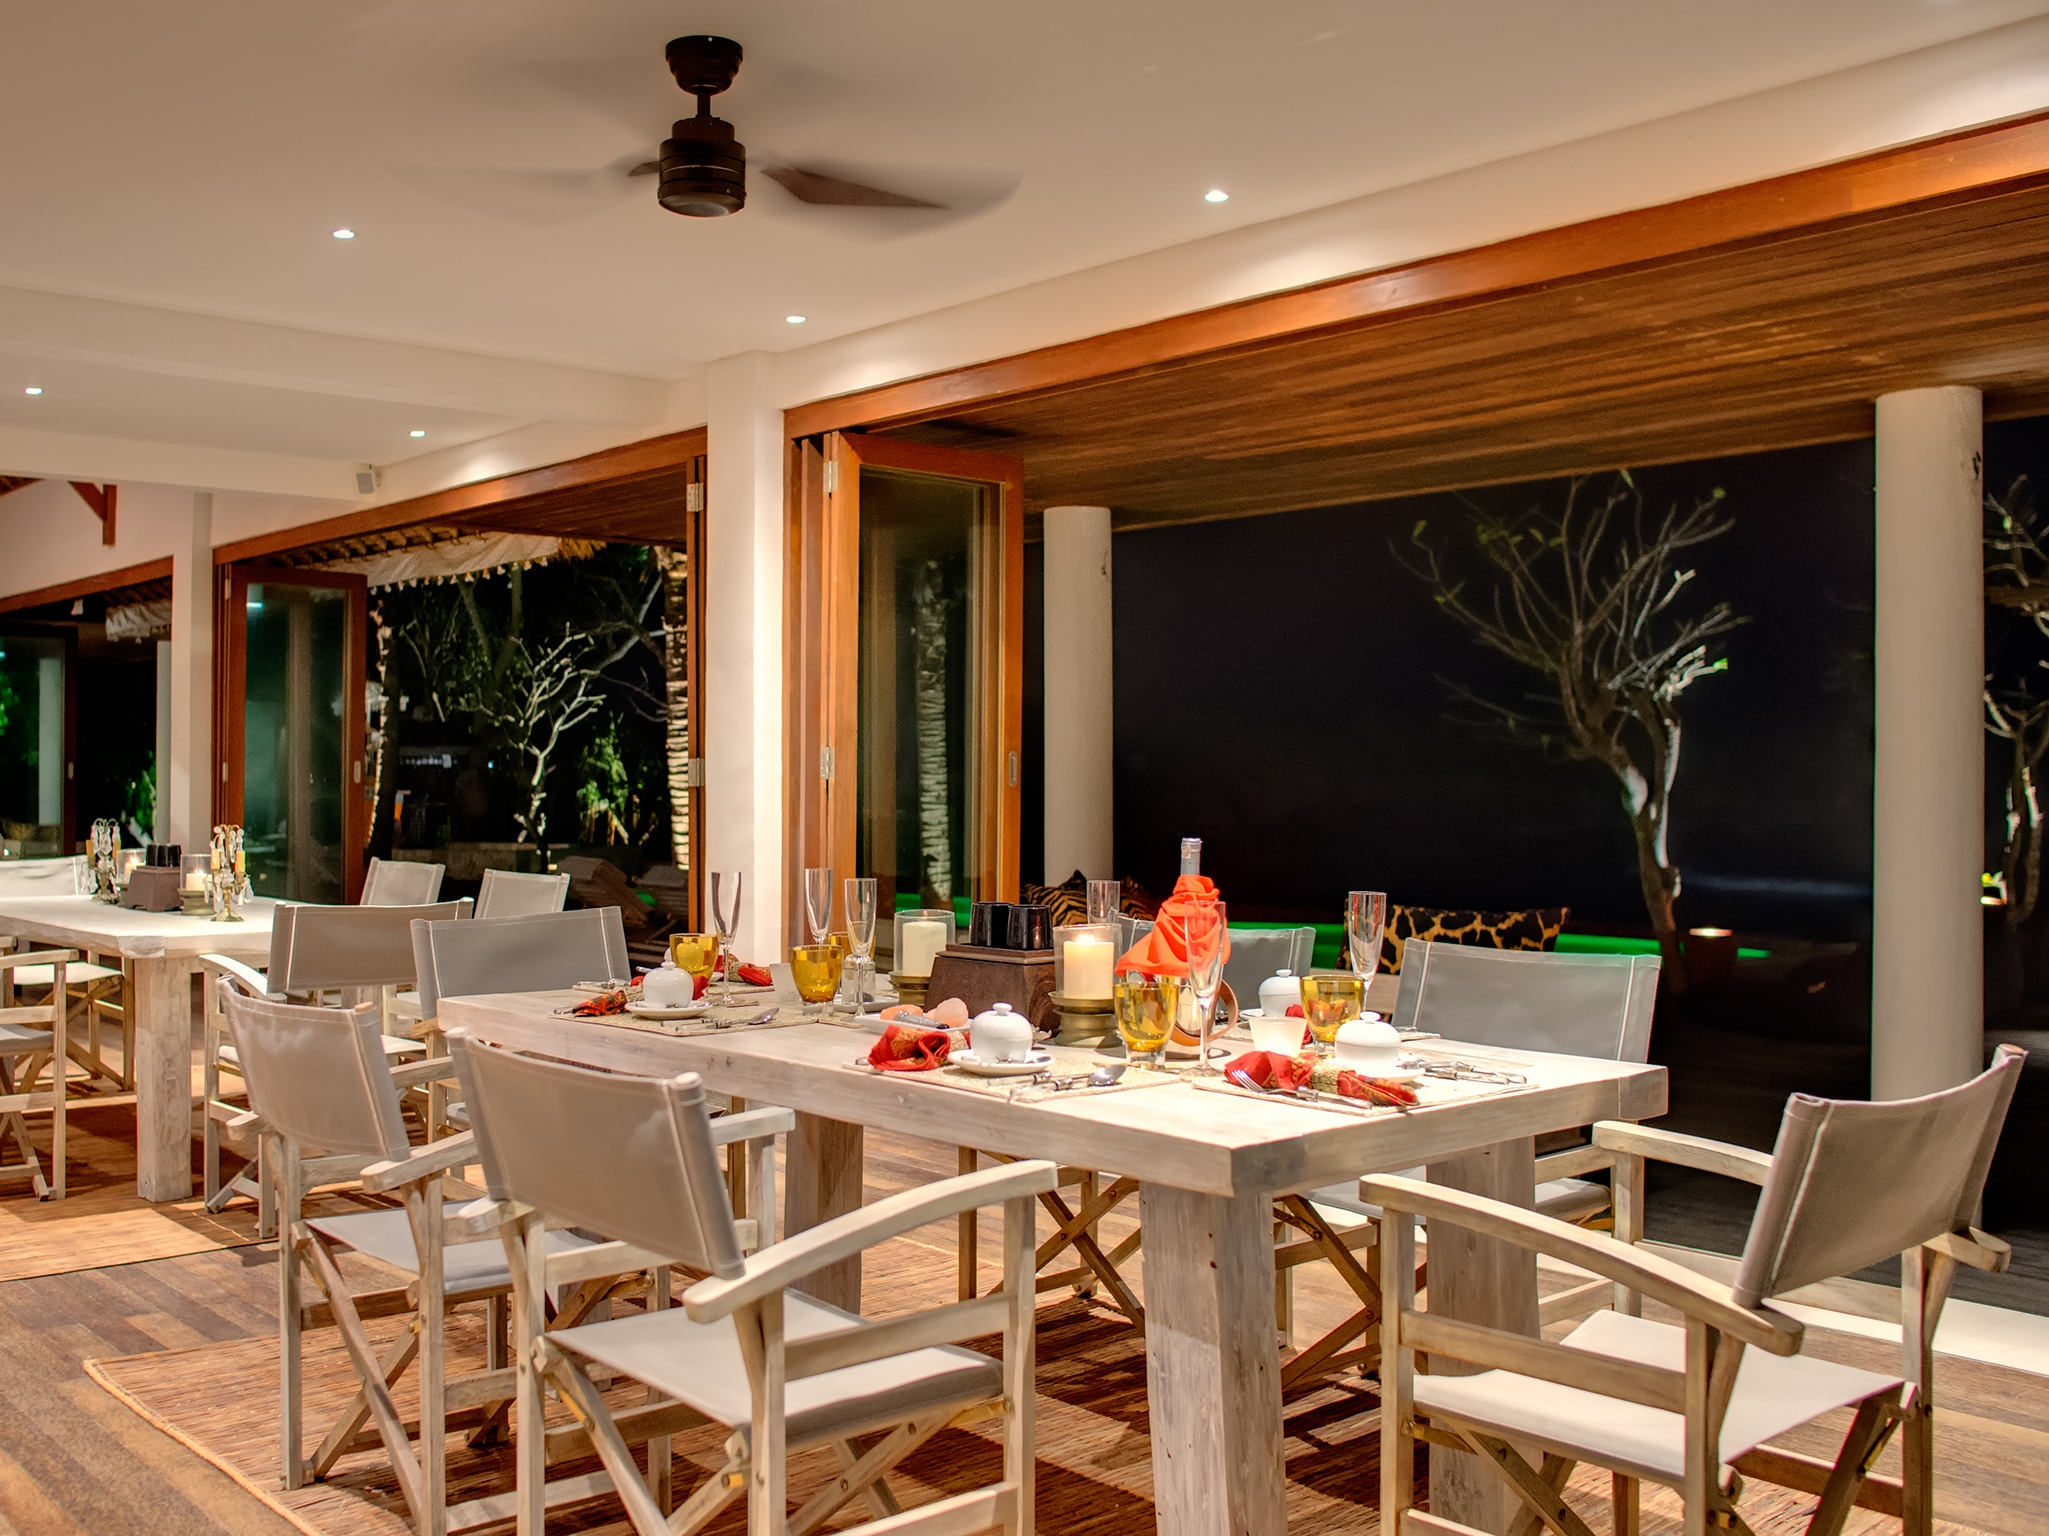 Villa Voyage - Dining room at night - Villa Voyage, Nusa Lembongan, Bali